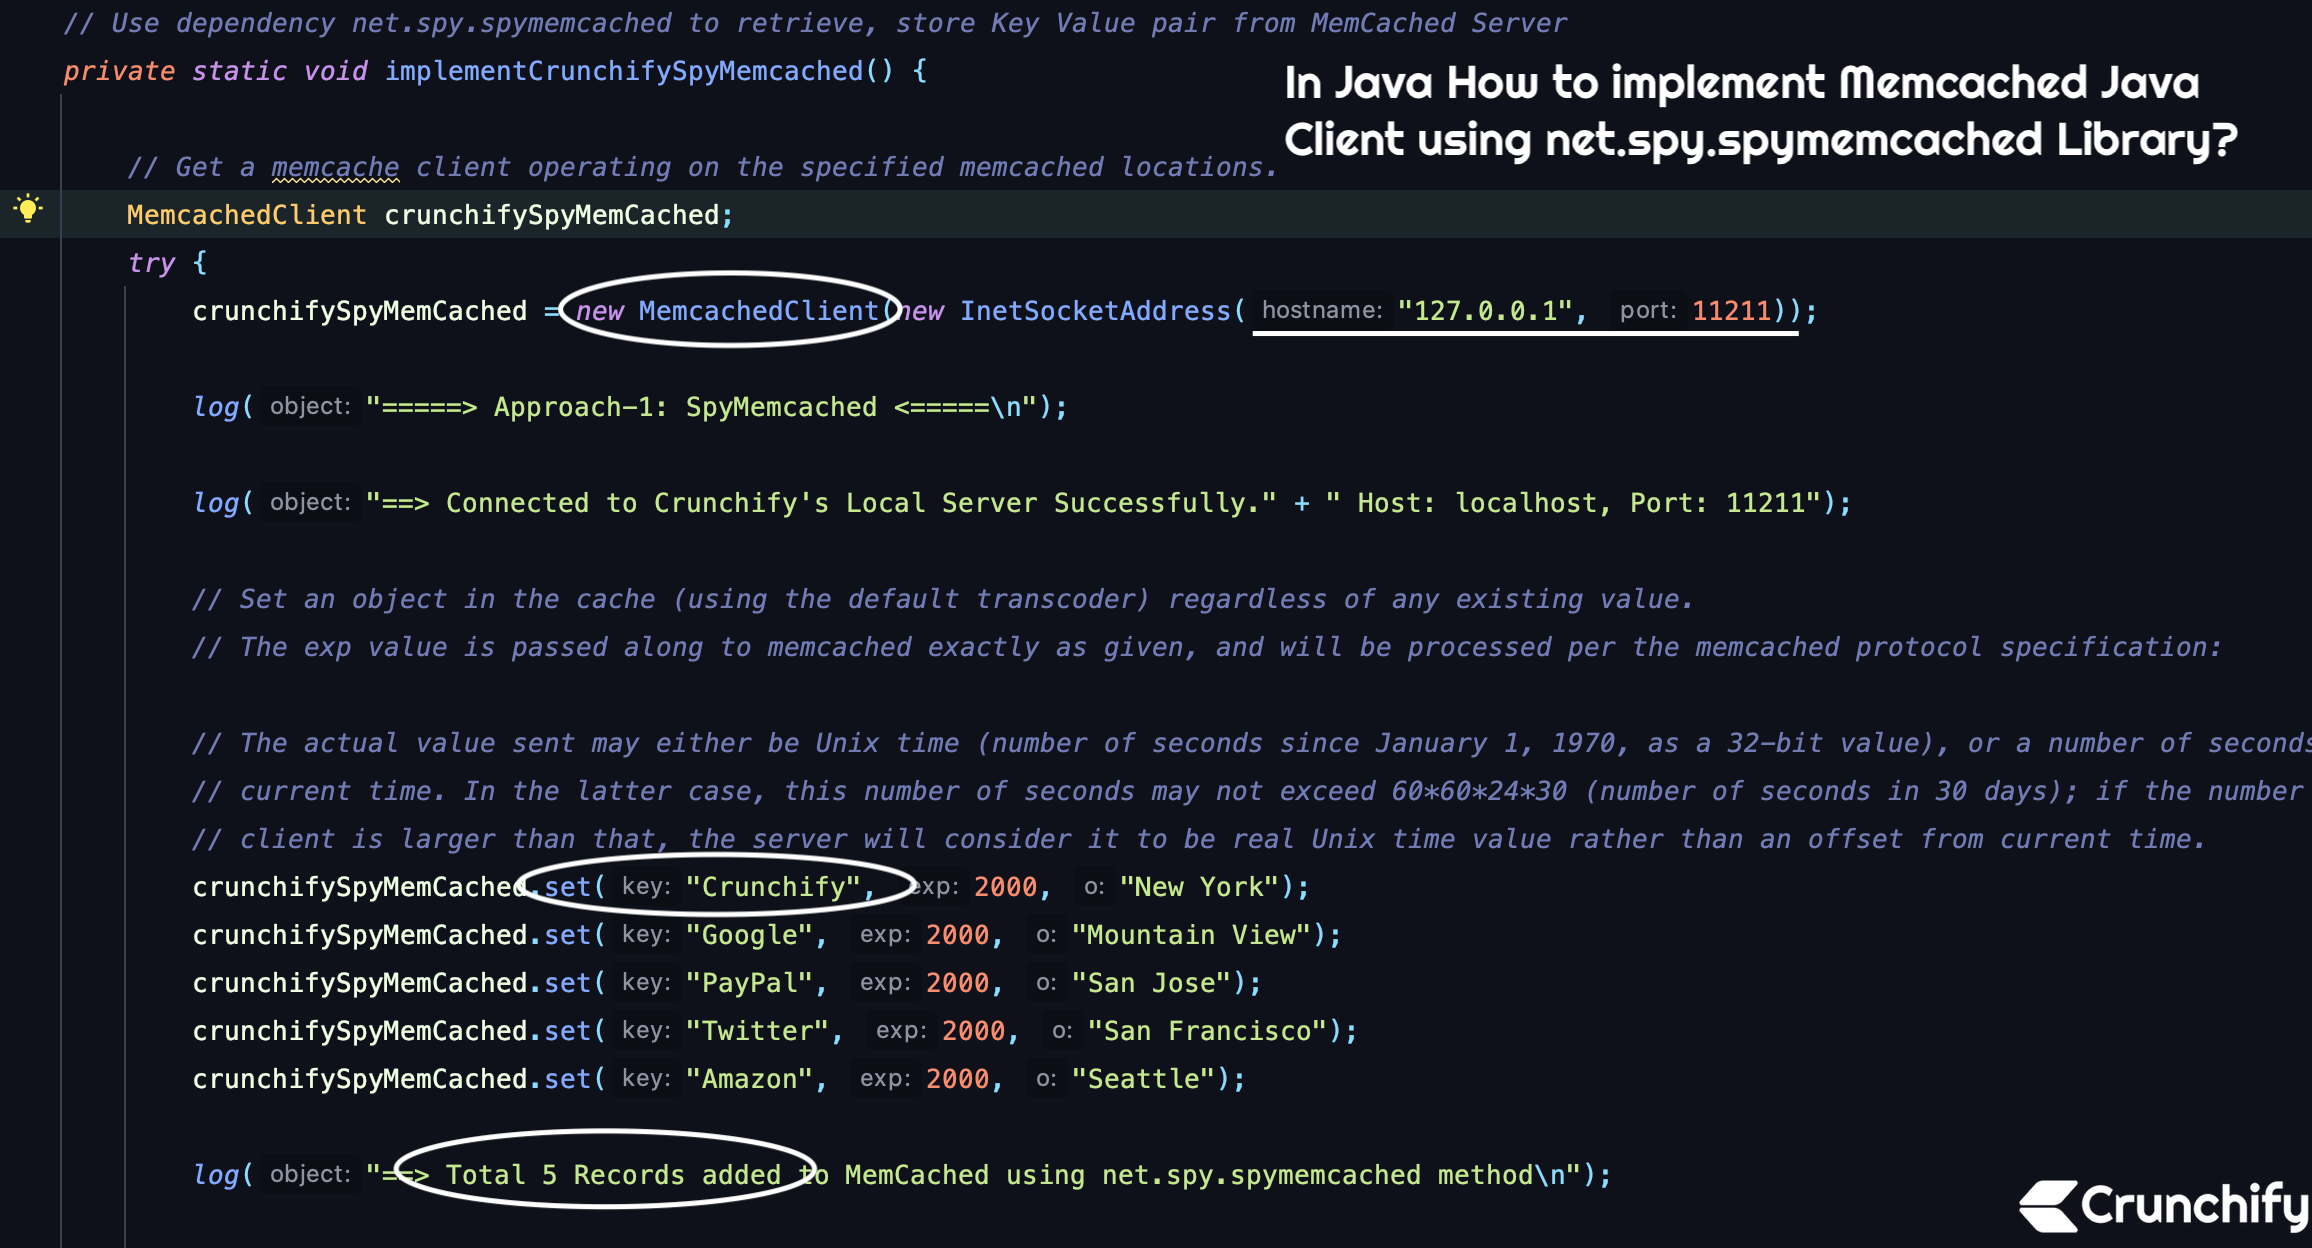 Memcached Java Client Tutorial using net.spy.spymemcached Library